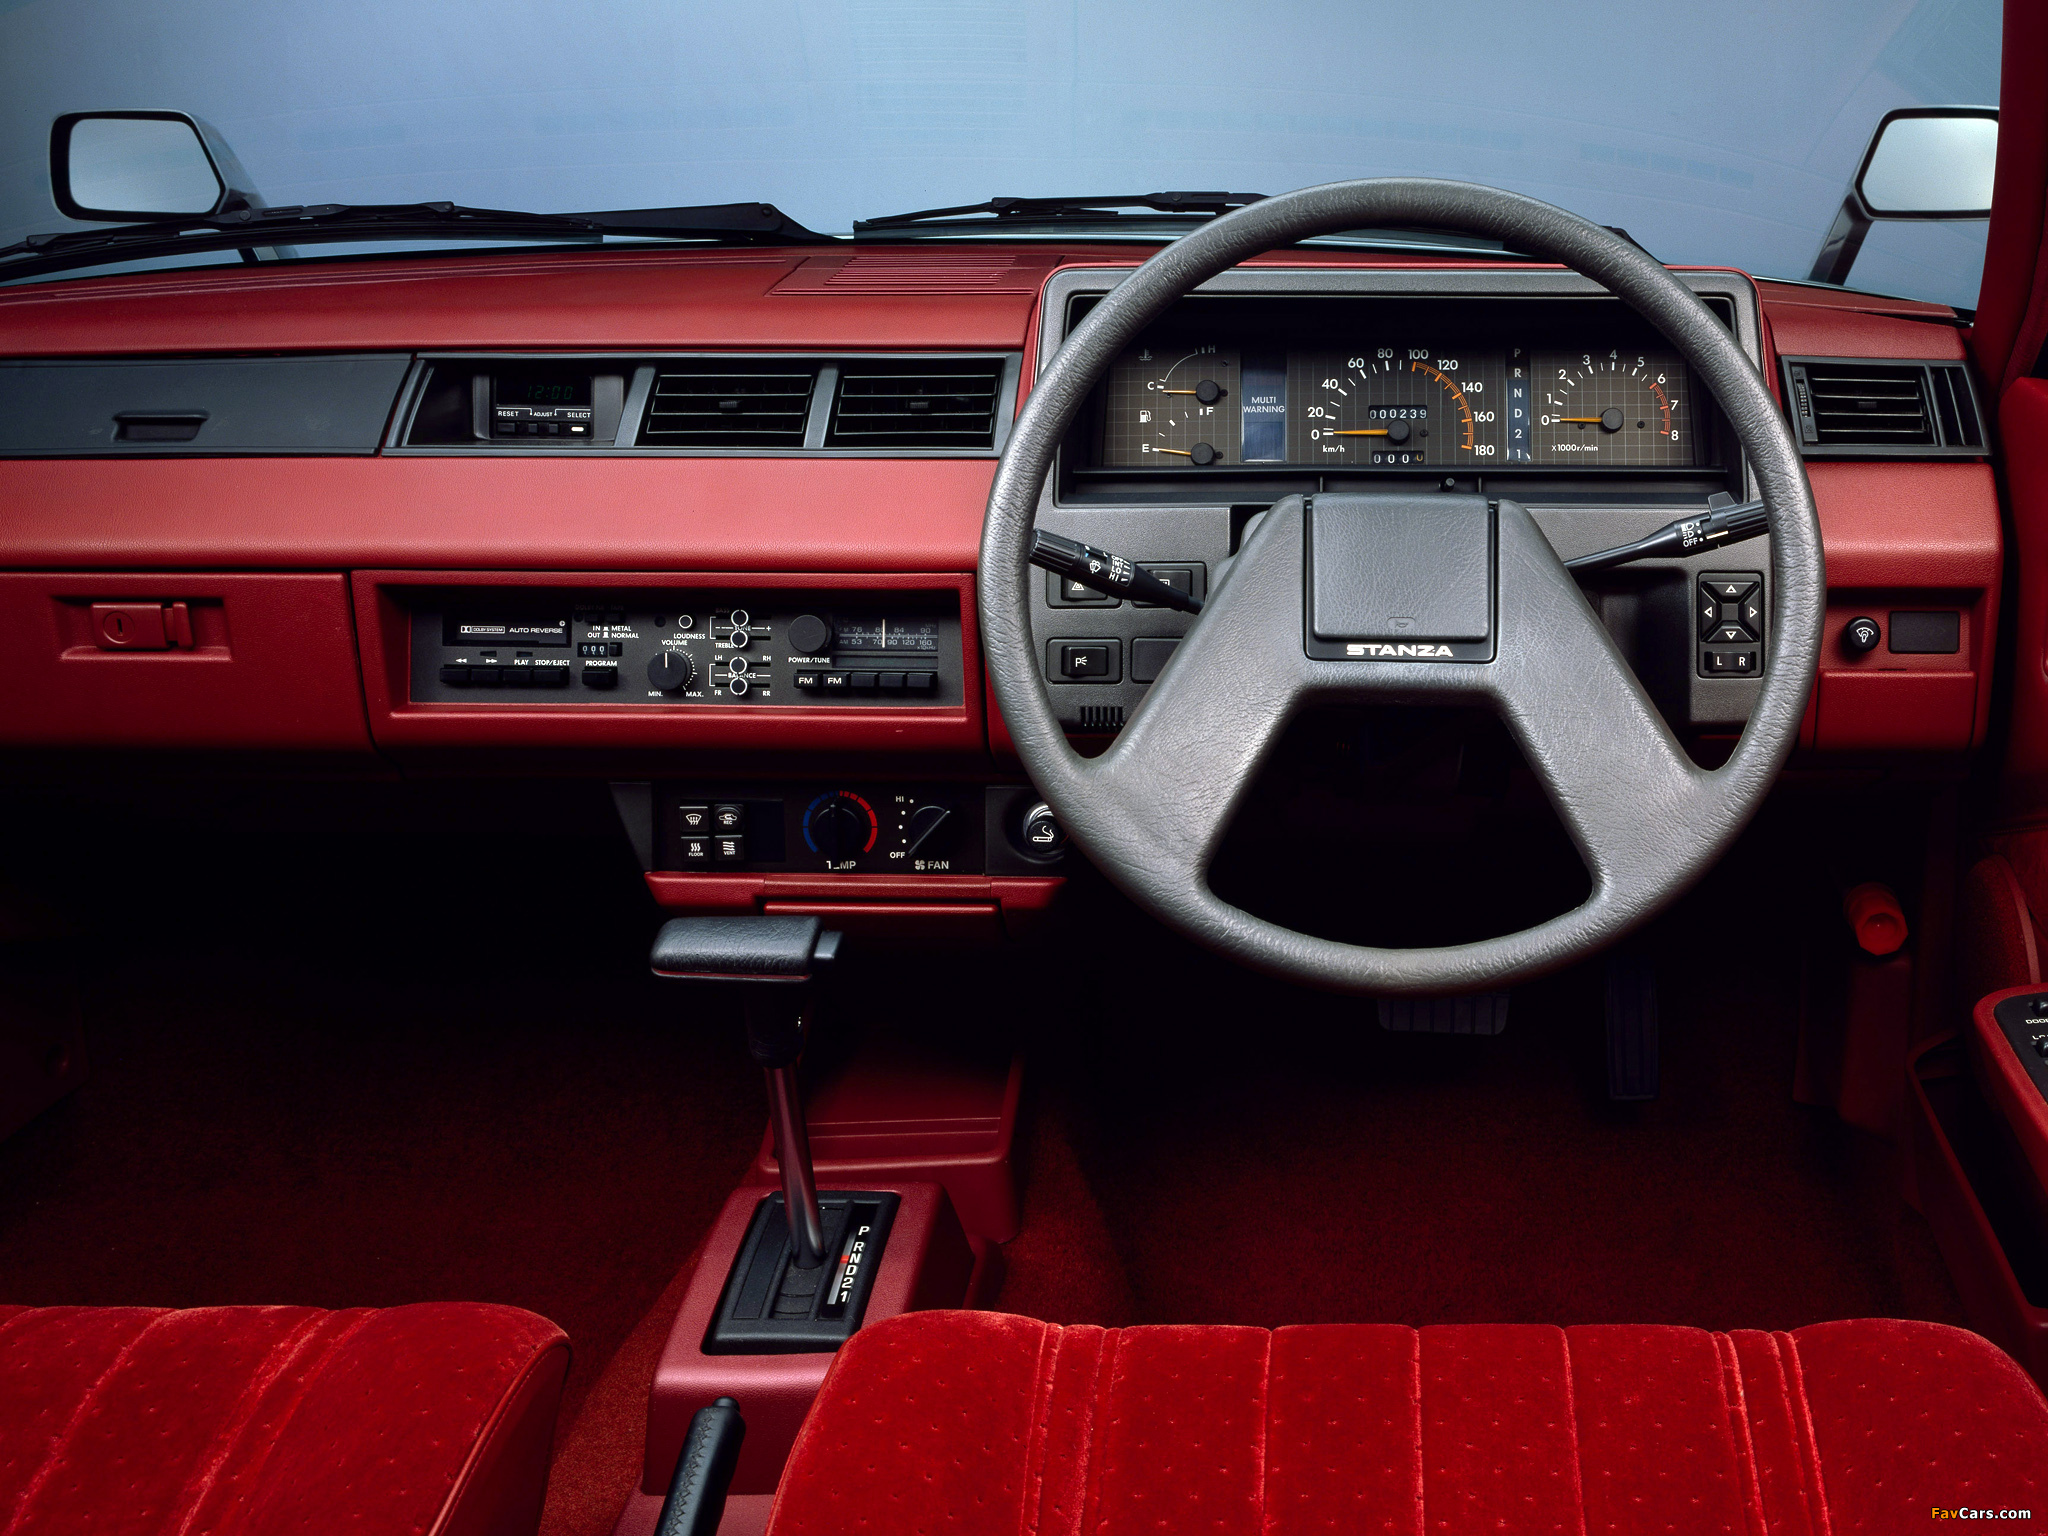 http://img.favcars.com/nissan/stanza/nissan_stanza_1981_images_2.jpg